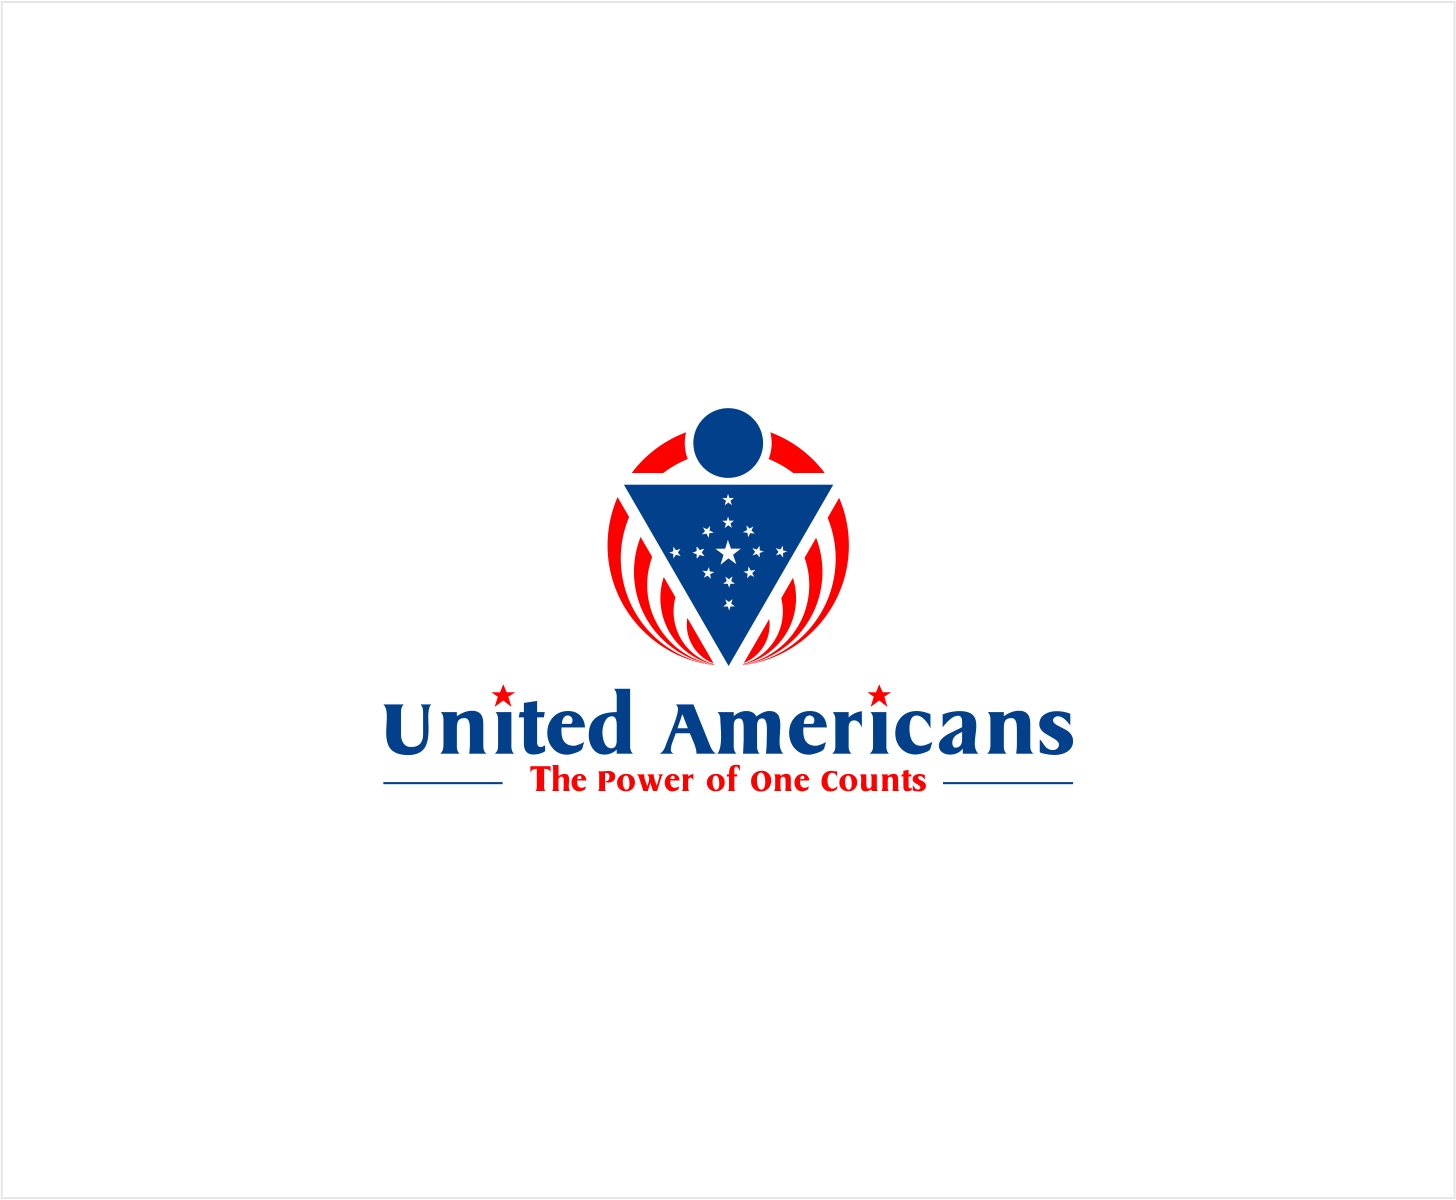 Logo Design by haidu - Entry No. 73 in the Logo Design Contest Creative Logo Design for United Americans.